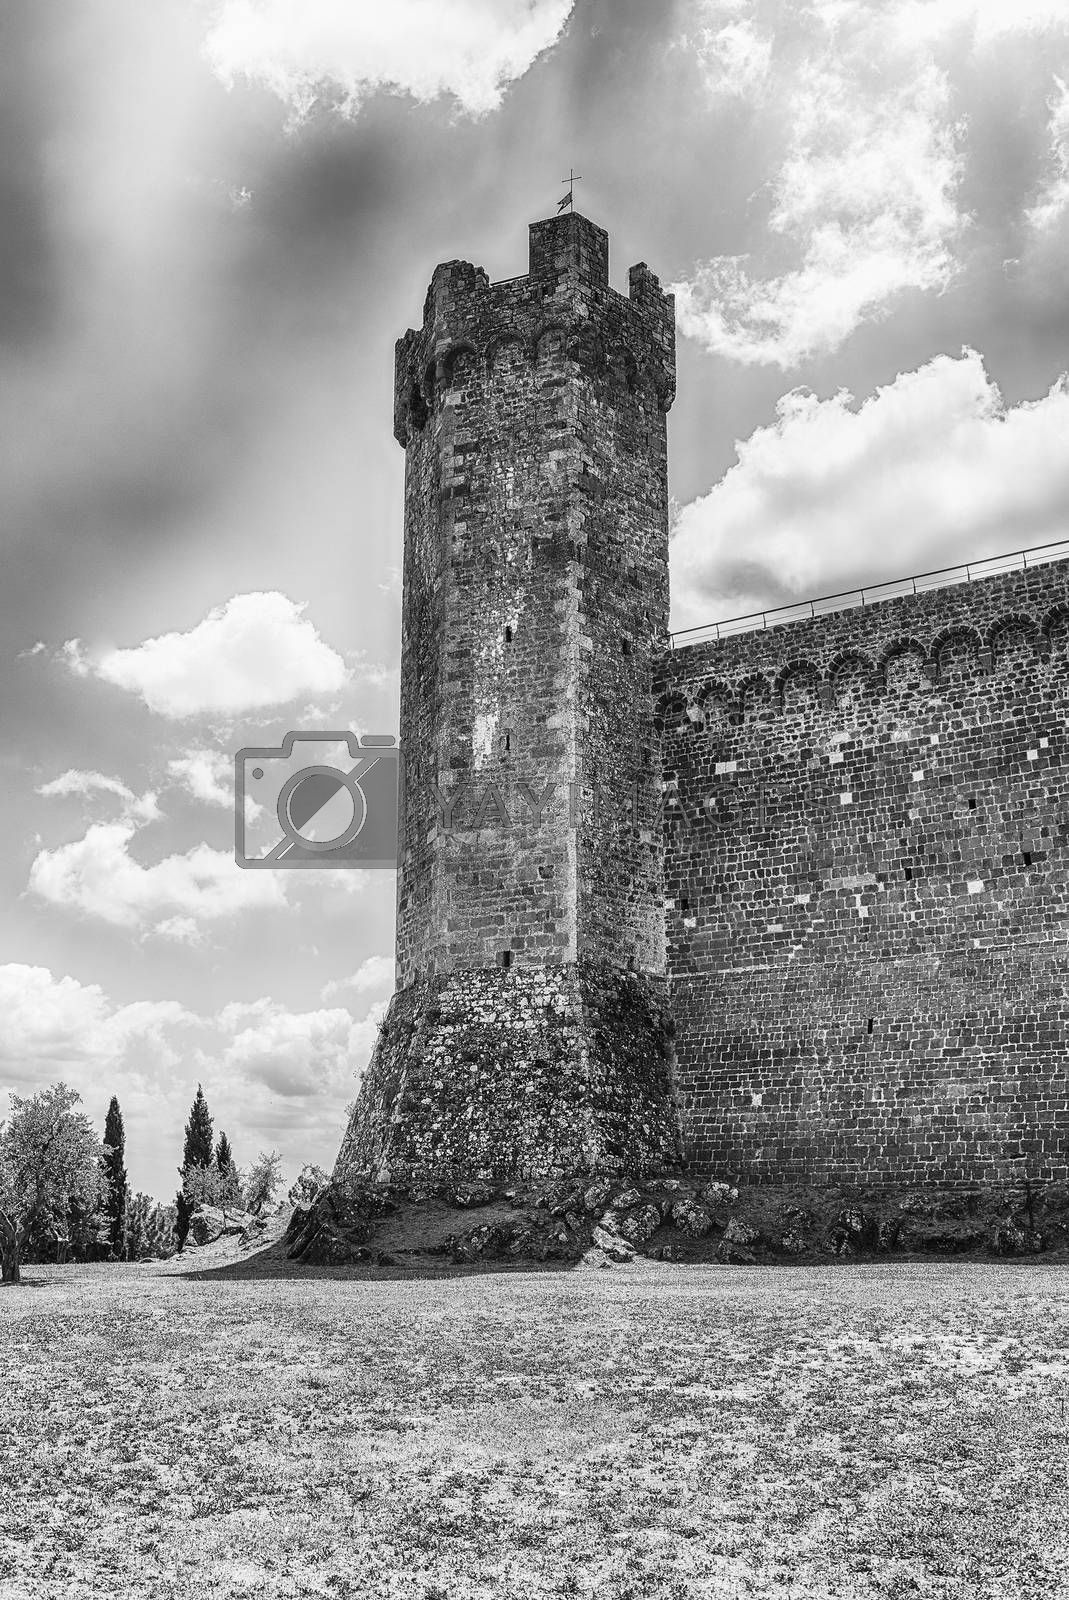 Medieval italian fortress, iconic landmark and one of the most visited sightseeing in Montalcino, Tuscany, Italy